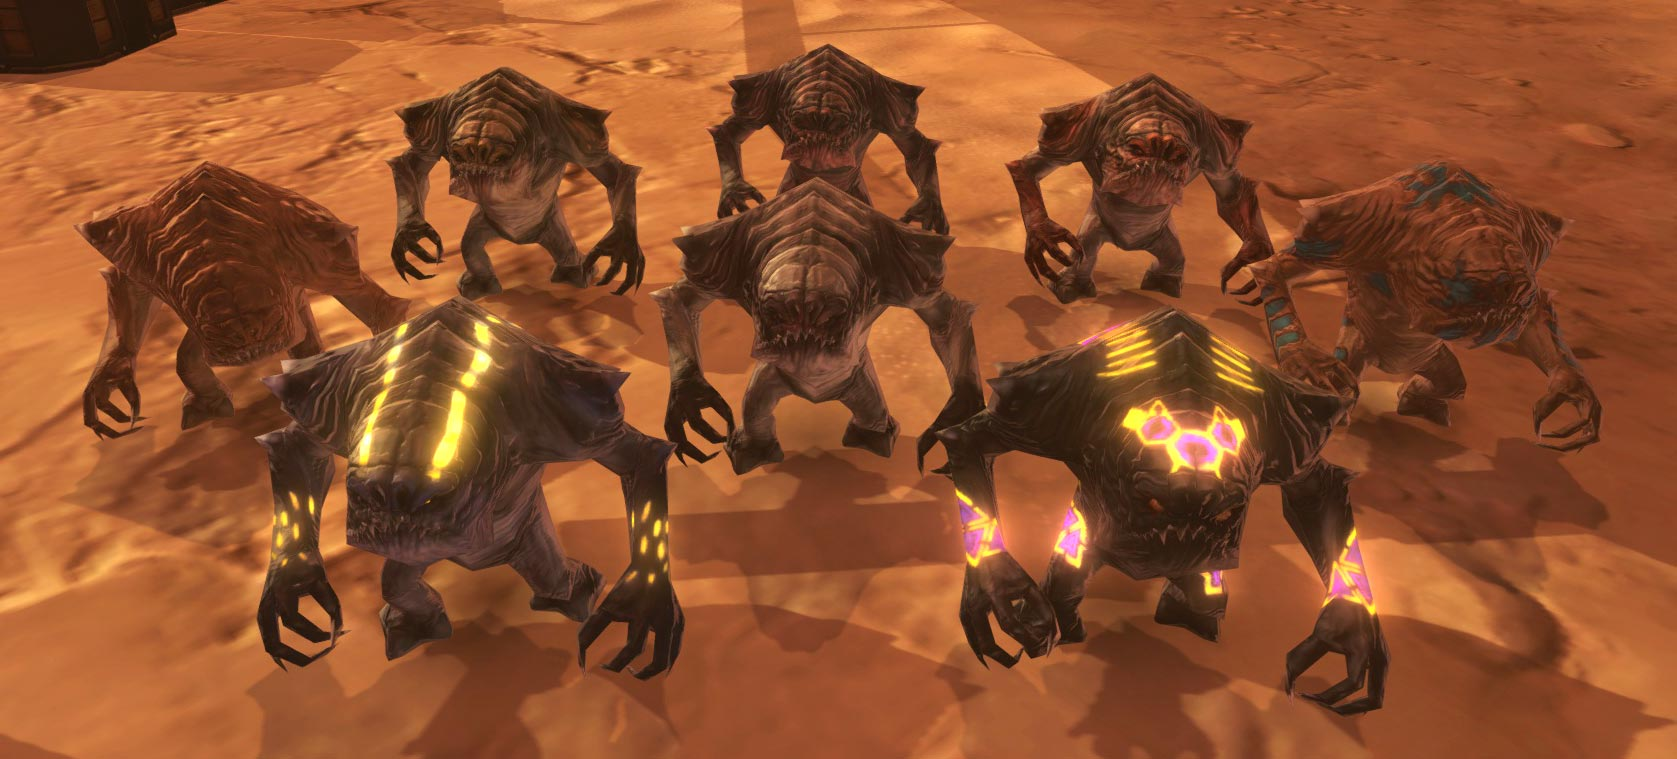 SWTOR Juvenile Rancor pets from Cartel Coins - Dulfy